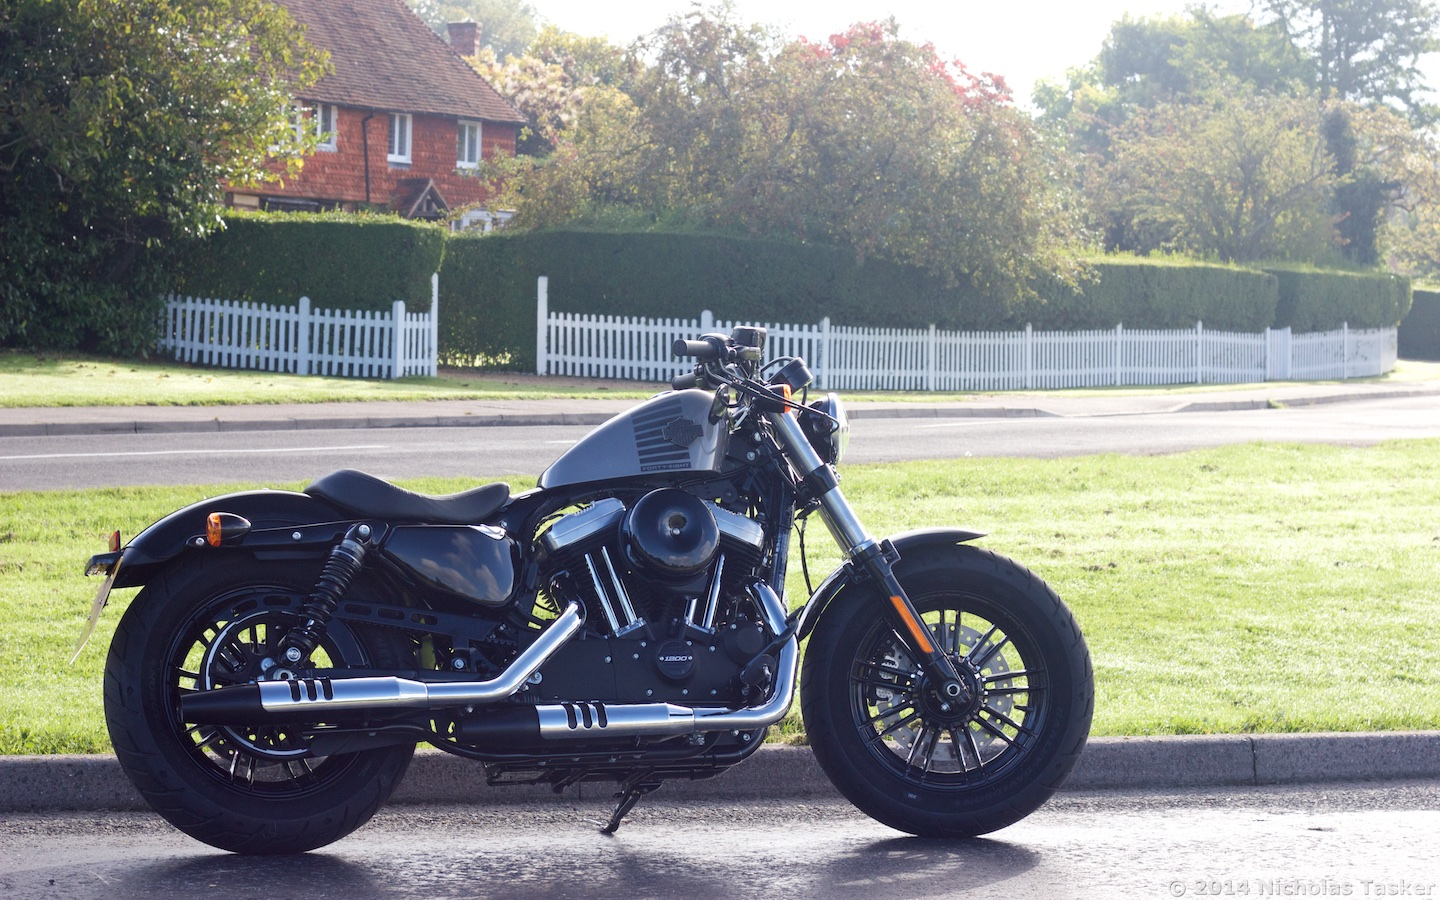 Review: 2015 Harley-Davidson Sporter Forty-Eight | Boy Meets Bike